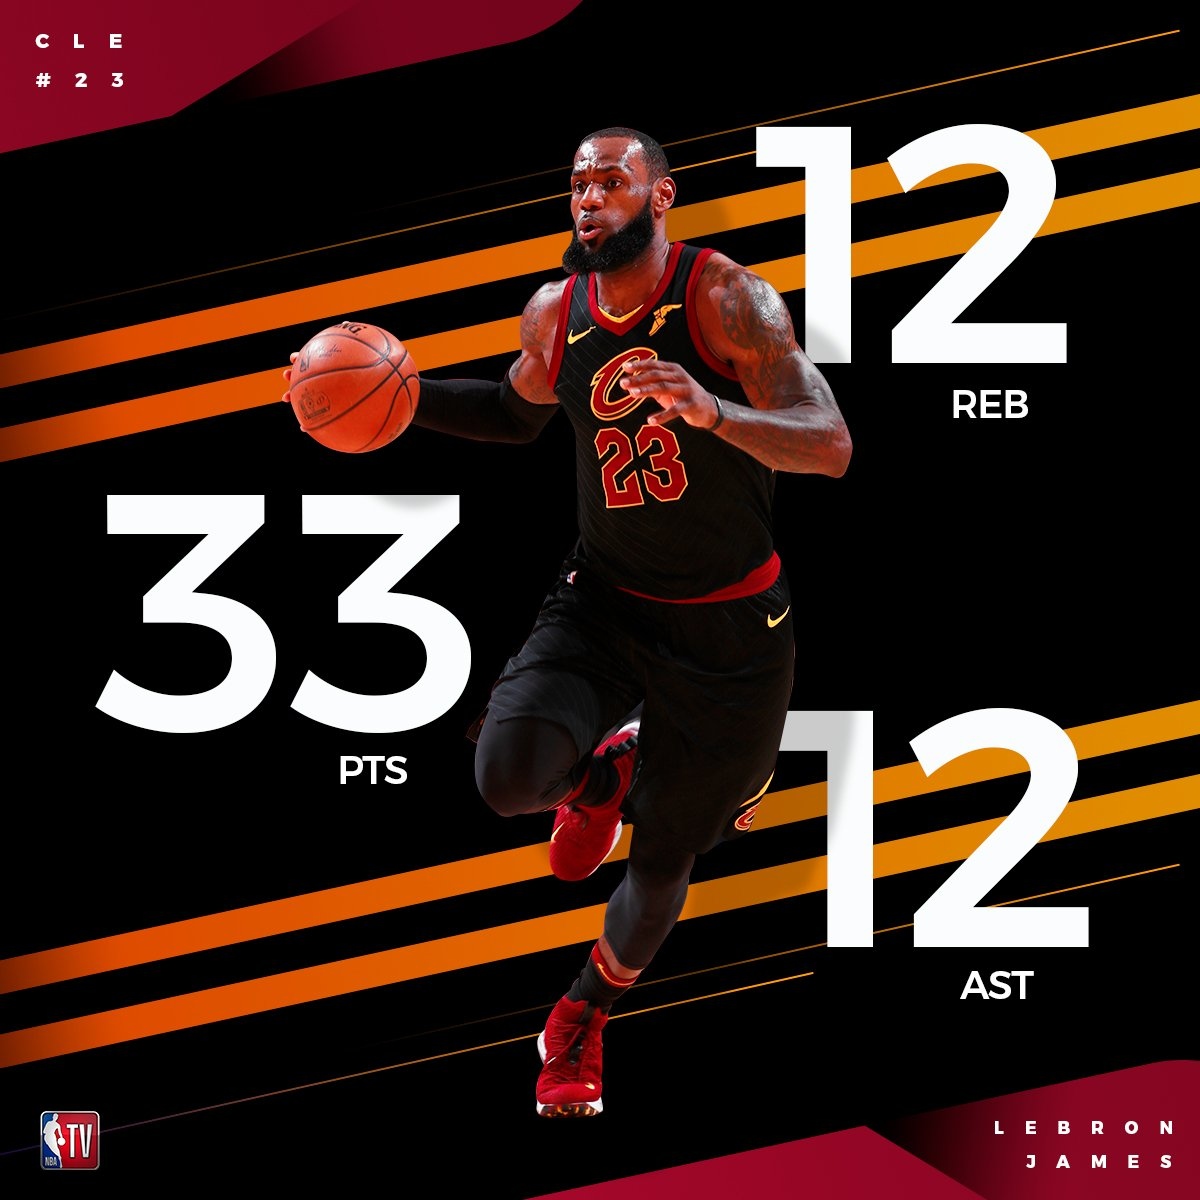 .@KingJames racks in his 15th triple-double of the season! 👑